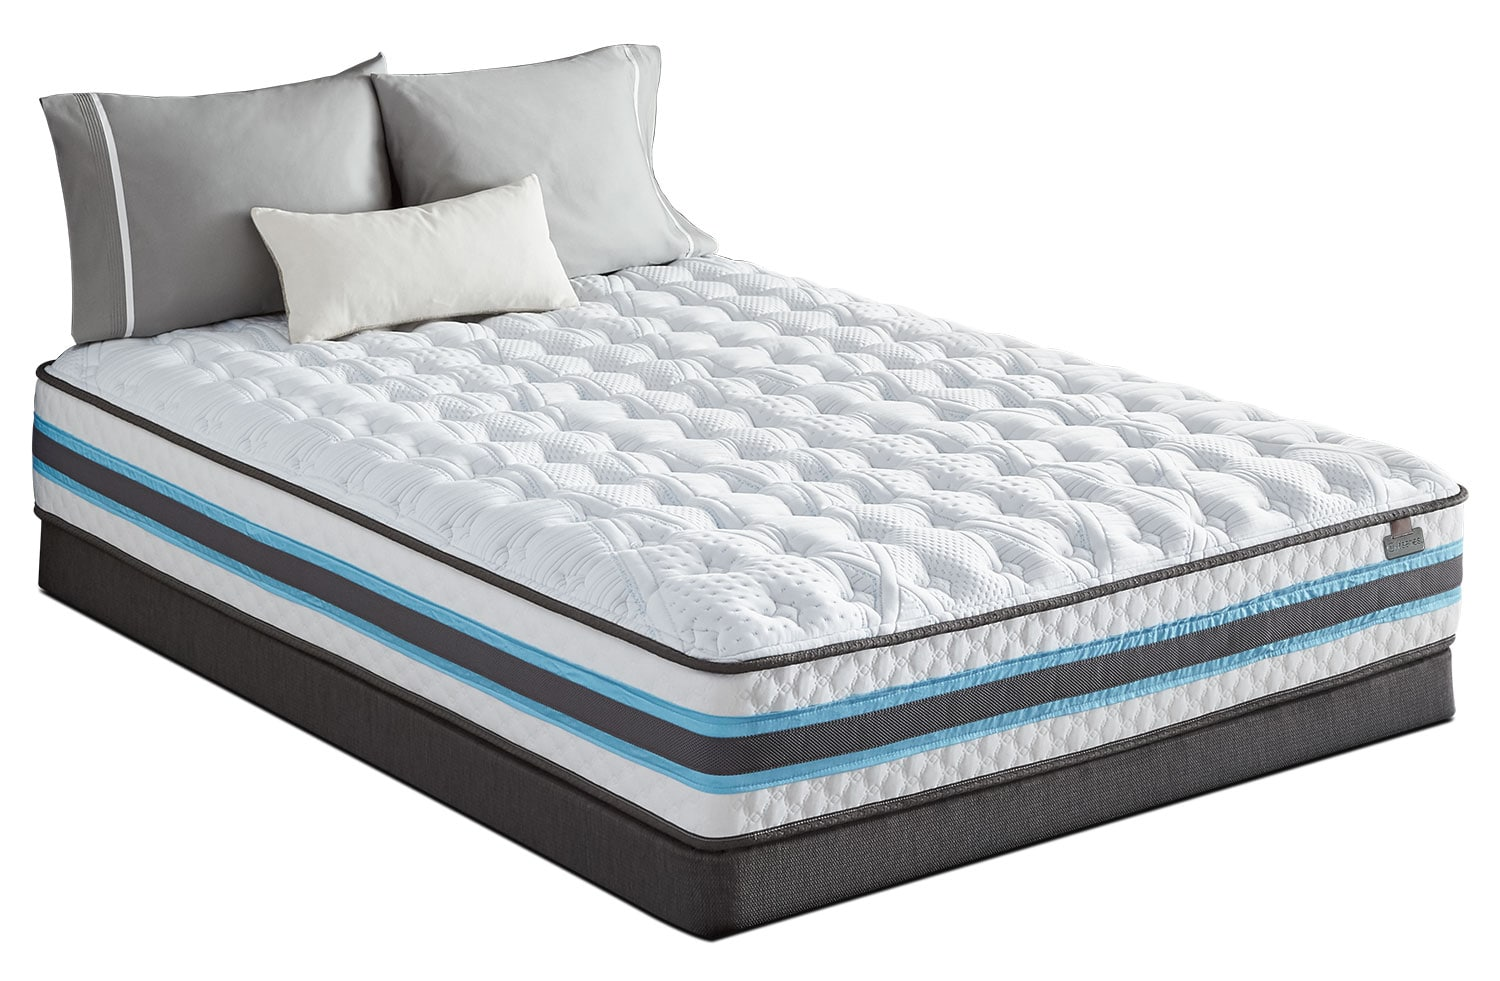 Serta iSeries® Atmosphere Tight-Top Plush Full Mattress Set